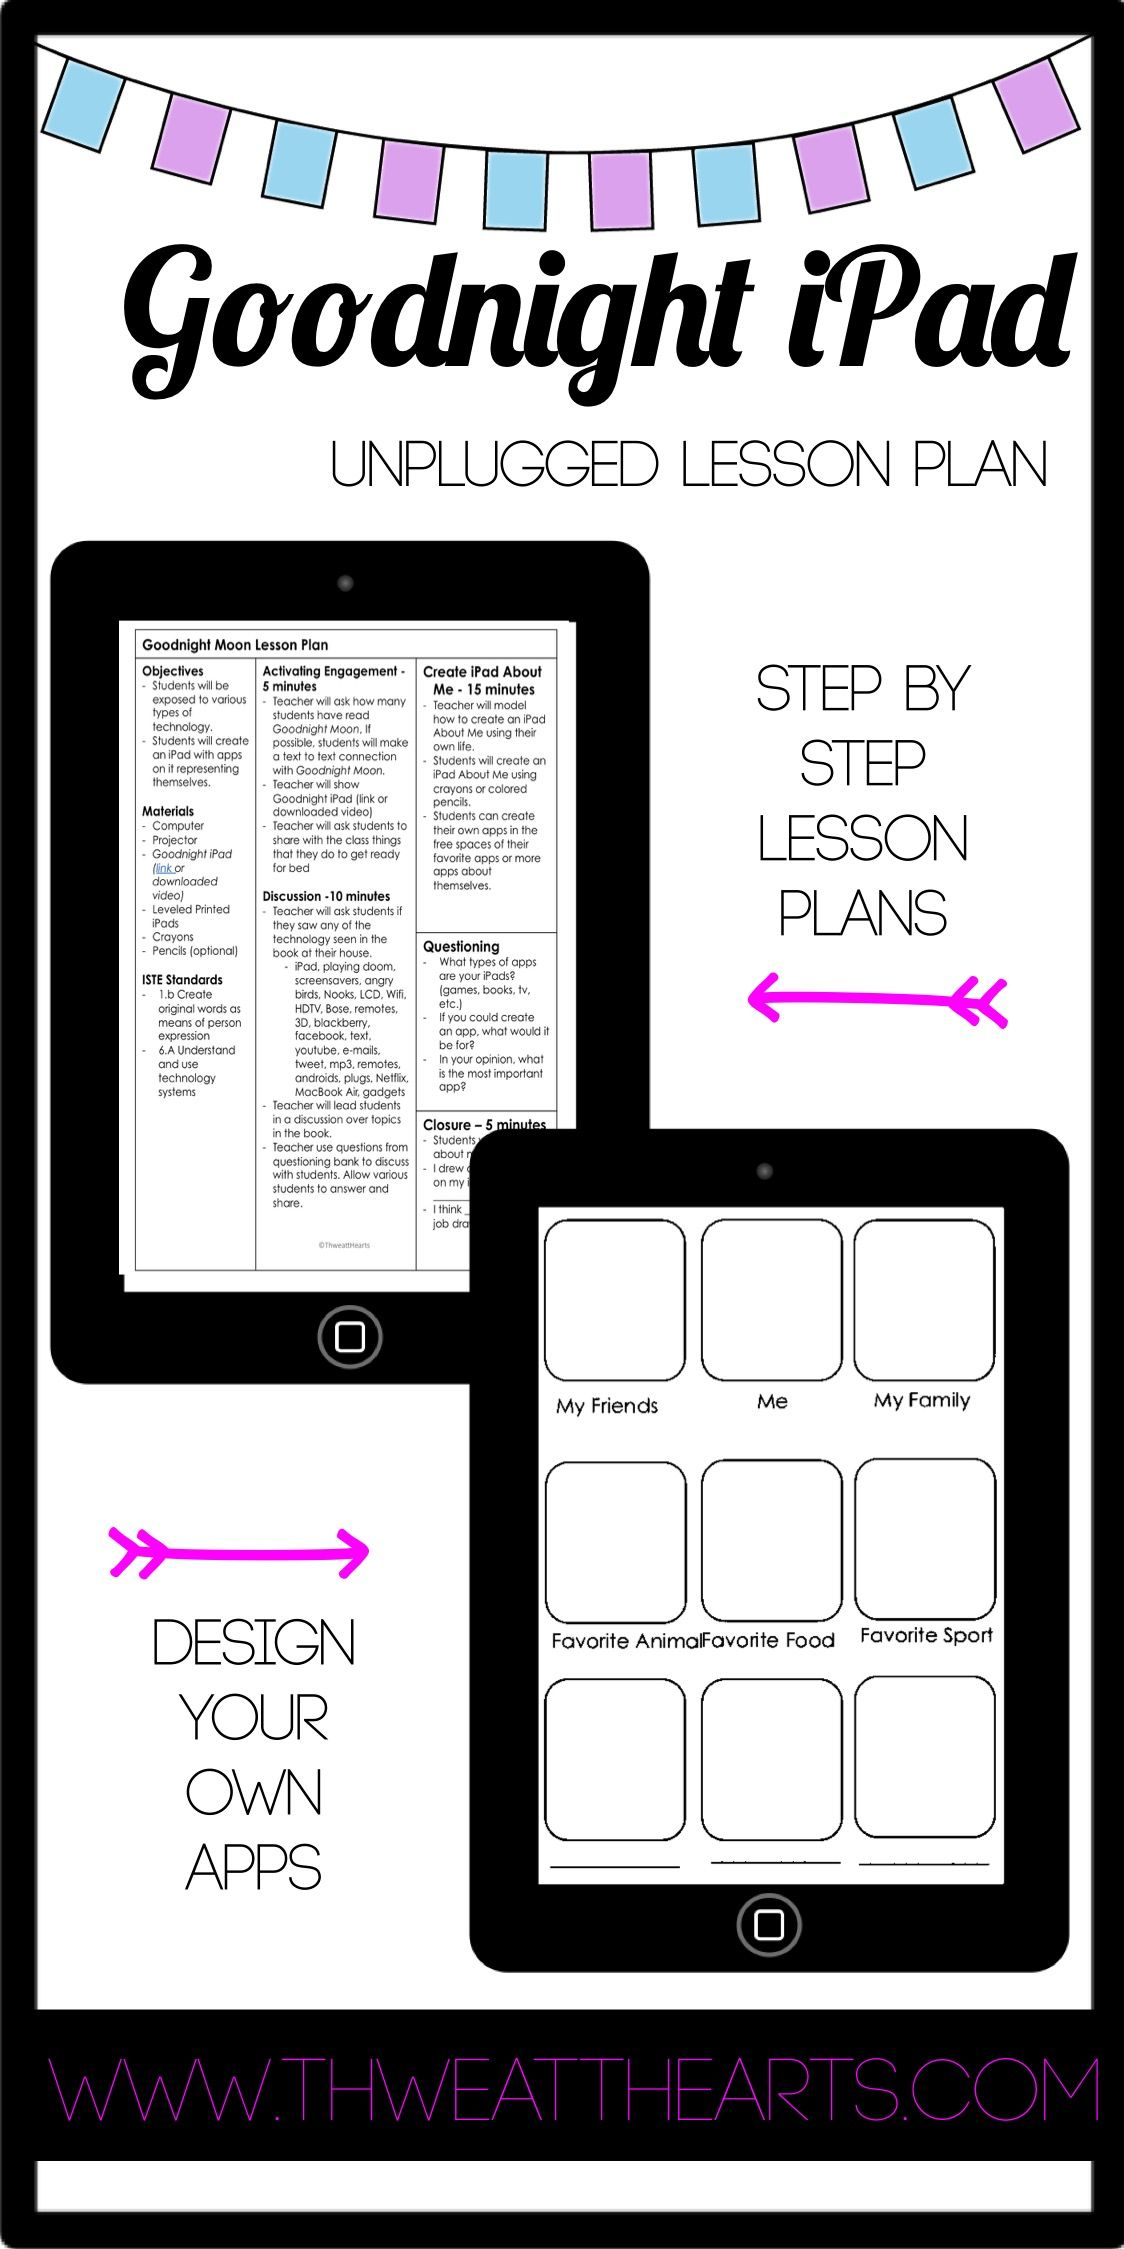 Goodnight iPad Unplugged Lesson Plan no tech required